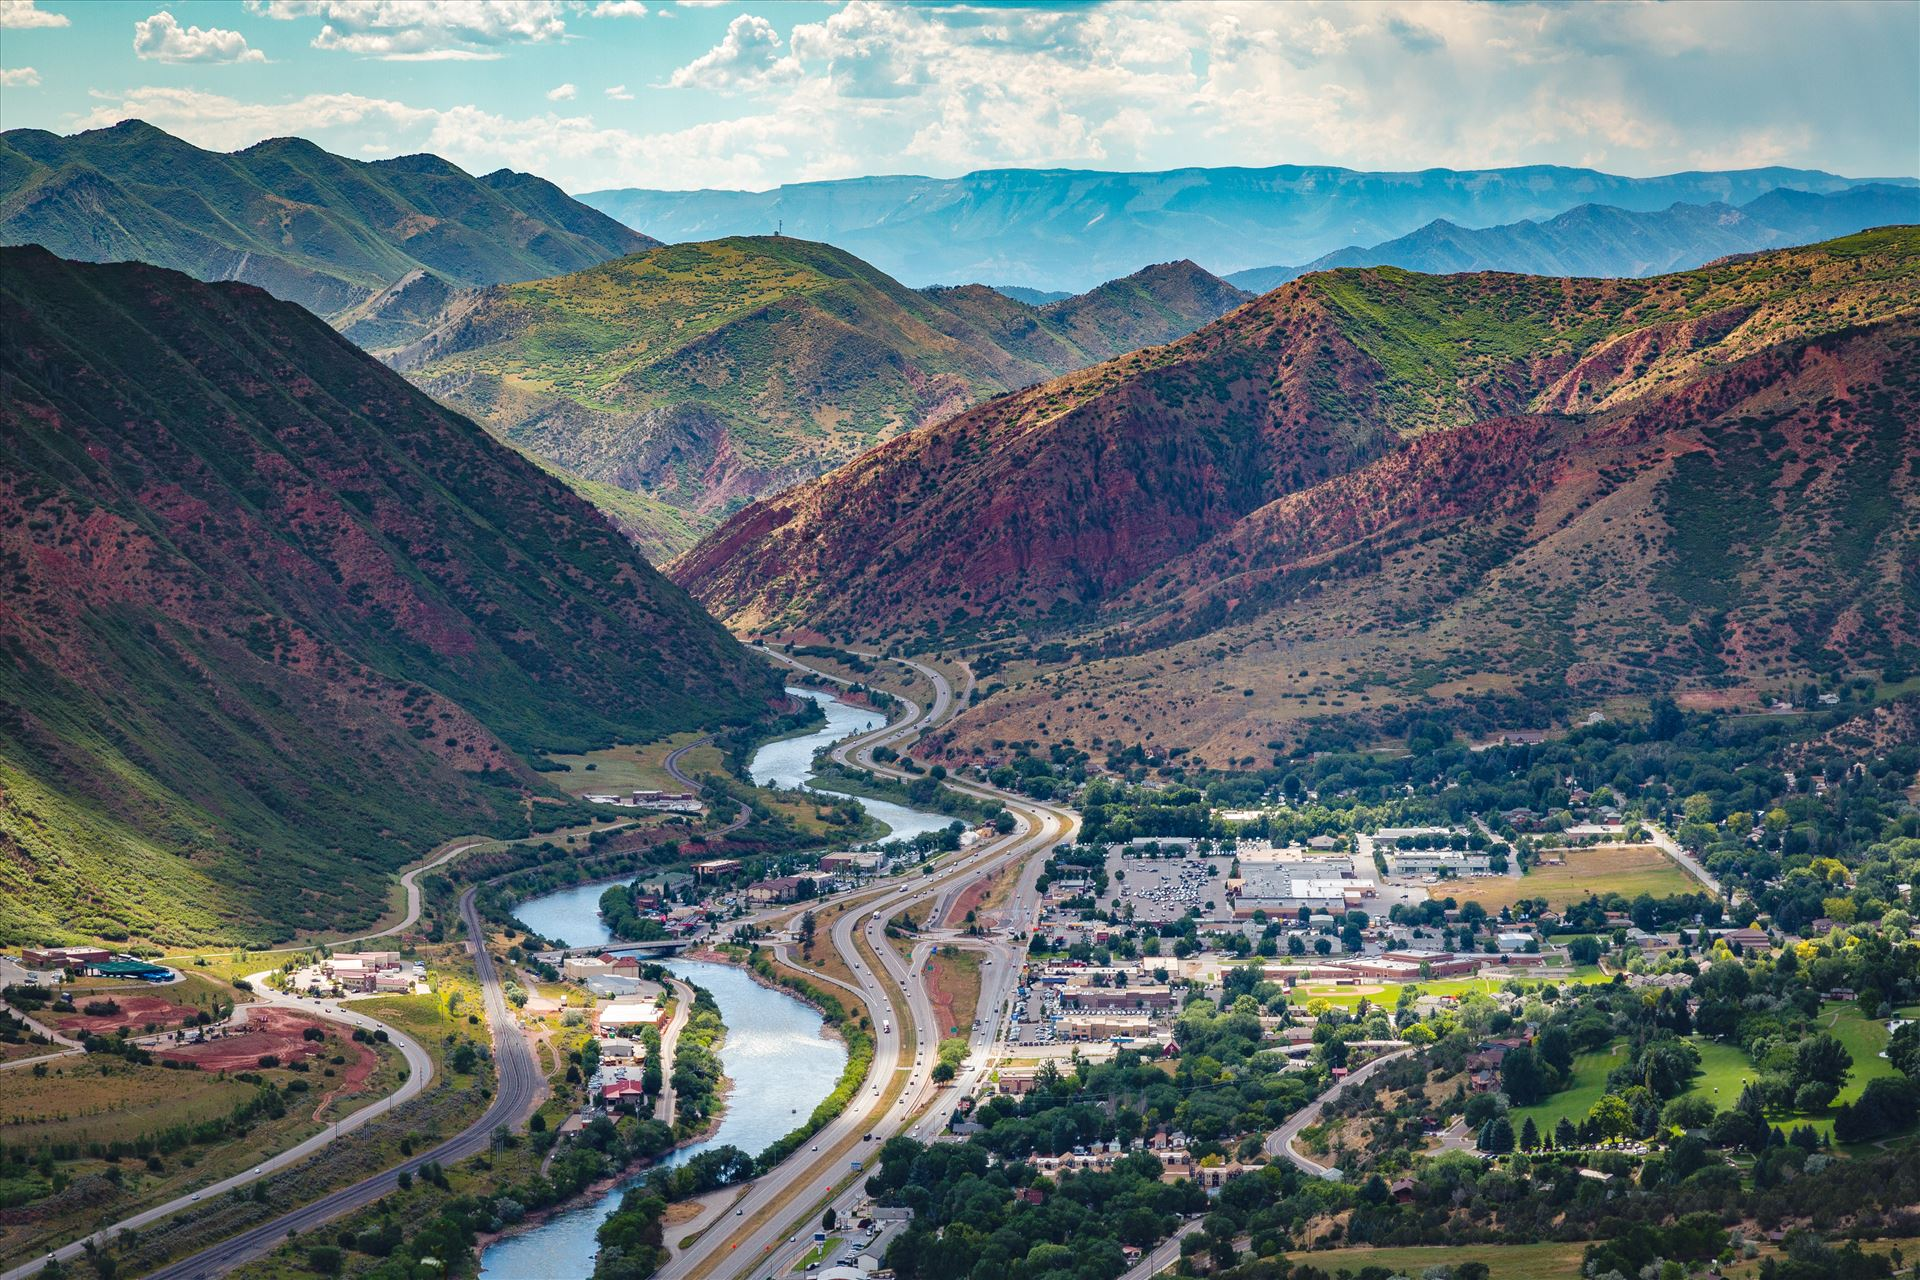 Glenwood Springs from Glenwood Caverns No 2 - Landscape version of the view from the top of Glenwood Caverns, the city of Glenwood Springs, Colorado looks miniature. by D Scott Smith